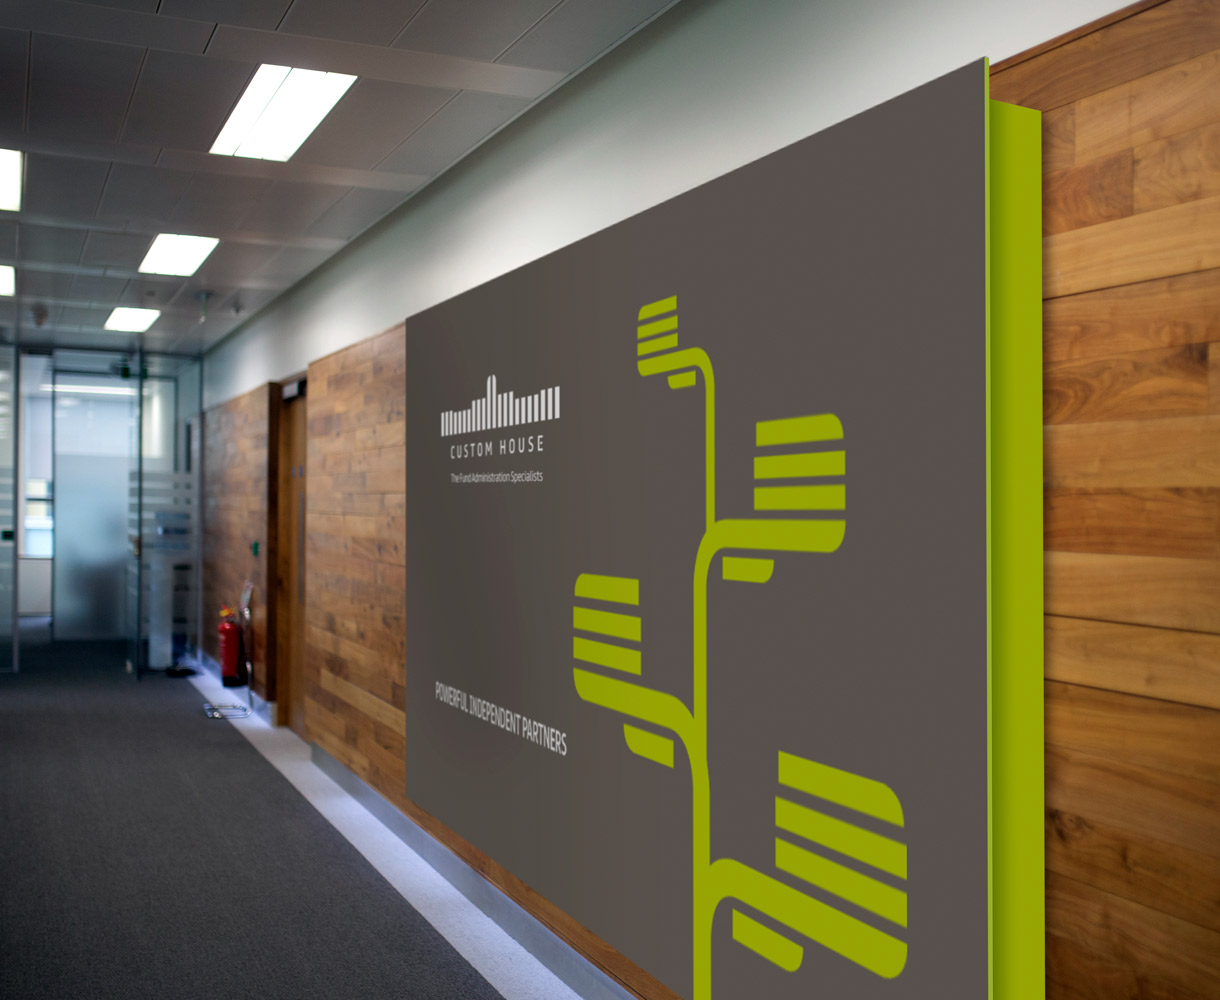 Principle design agency Dublin Custom house group brand project signage on internal wall I